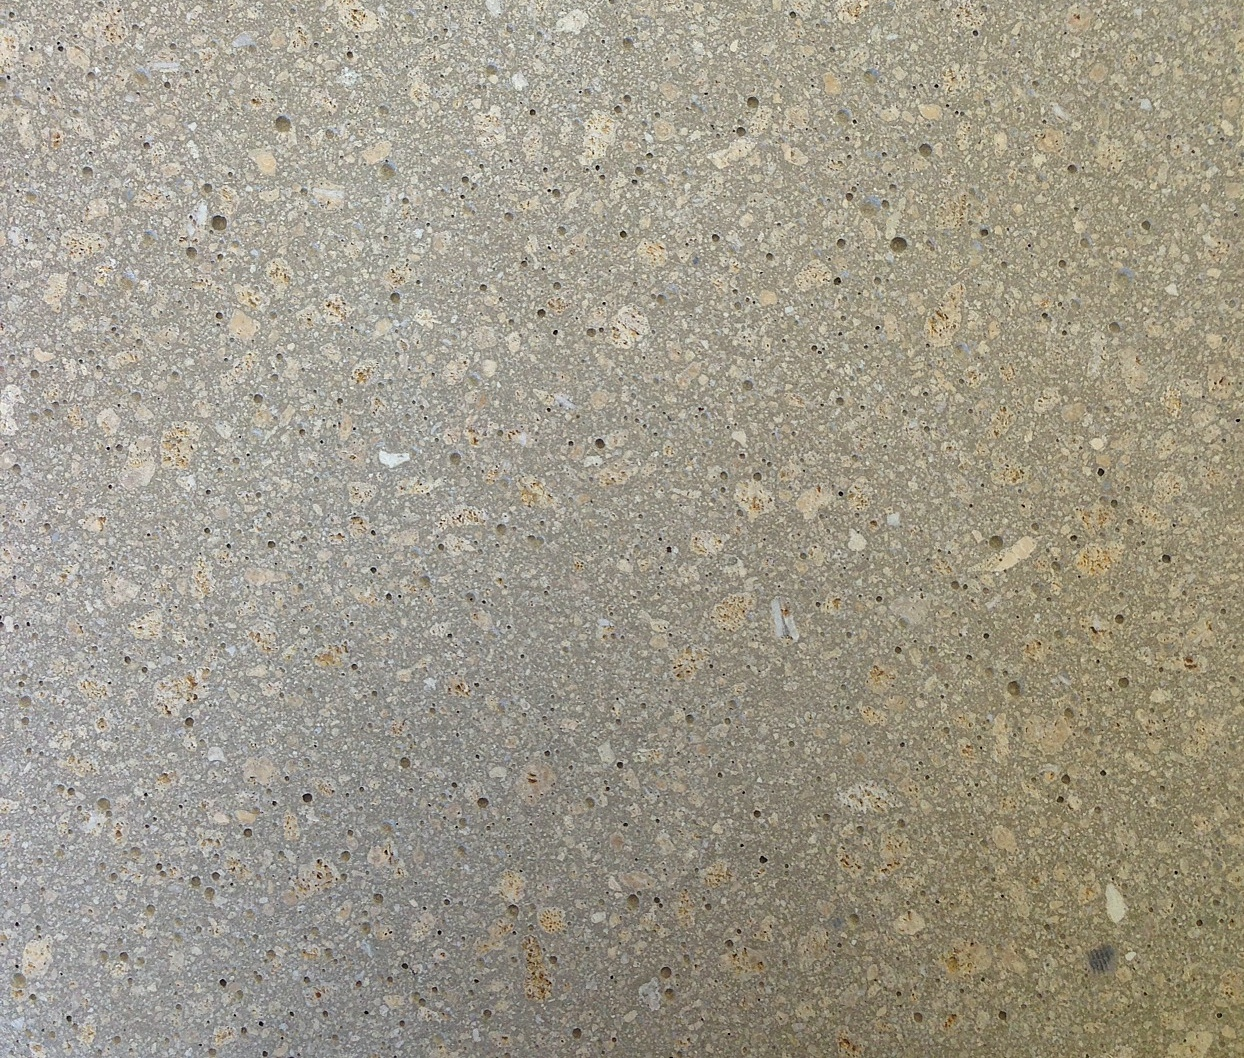 sandstone with cement, polished